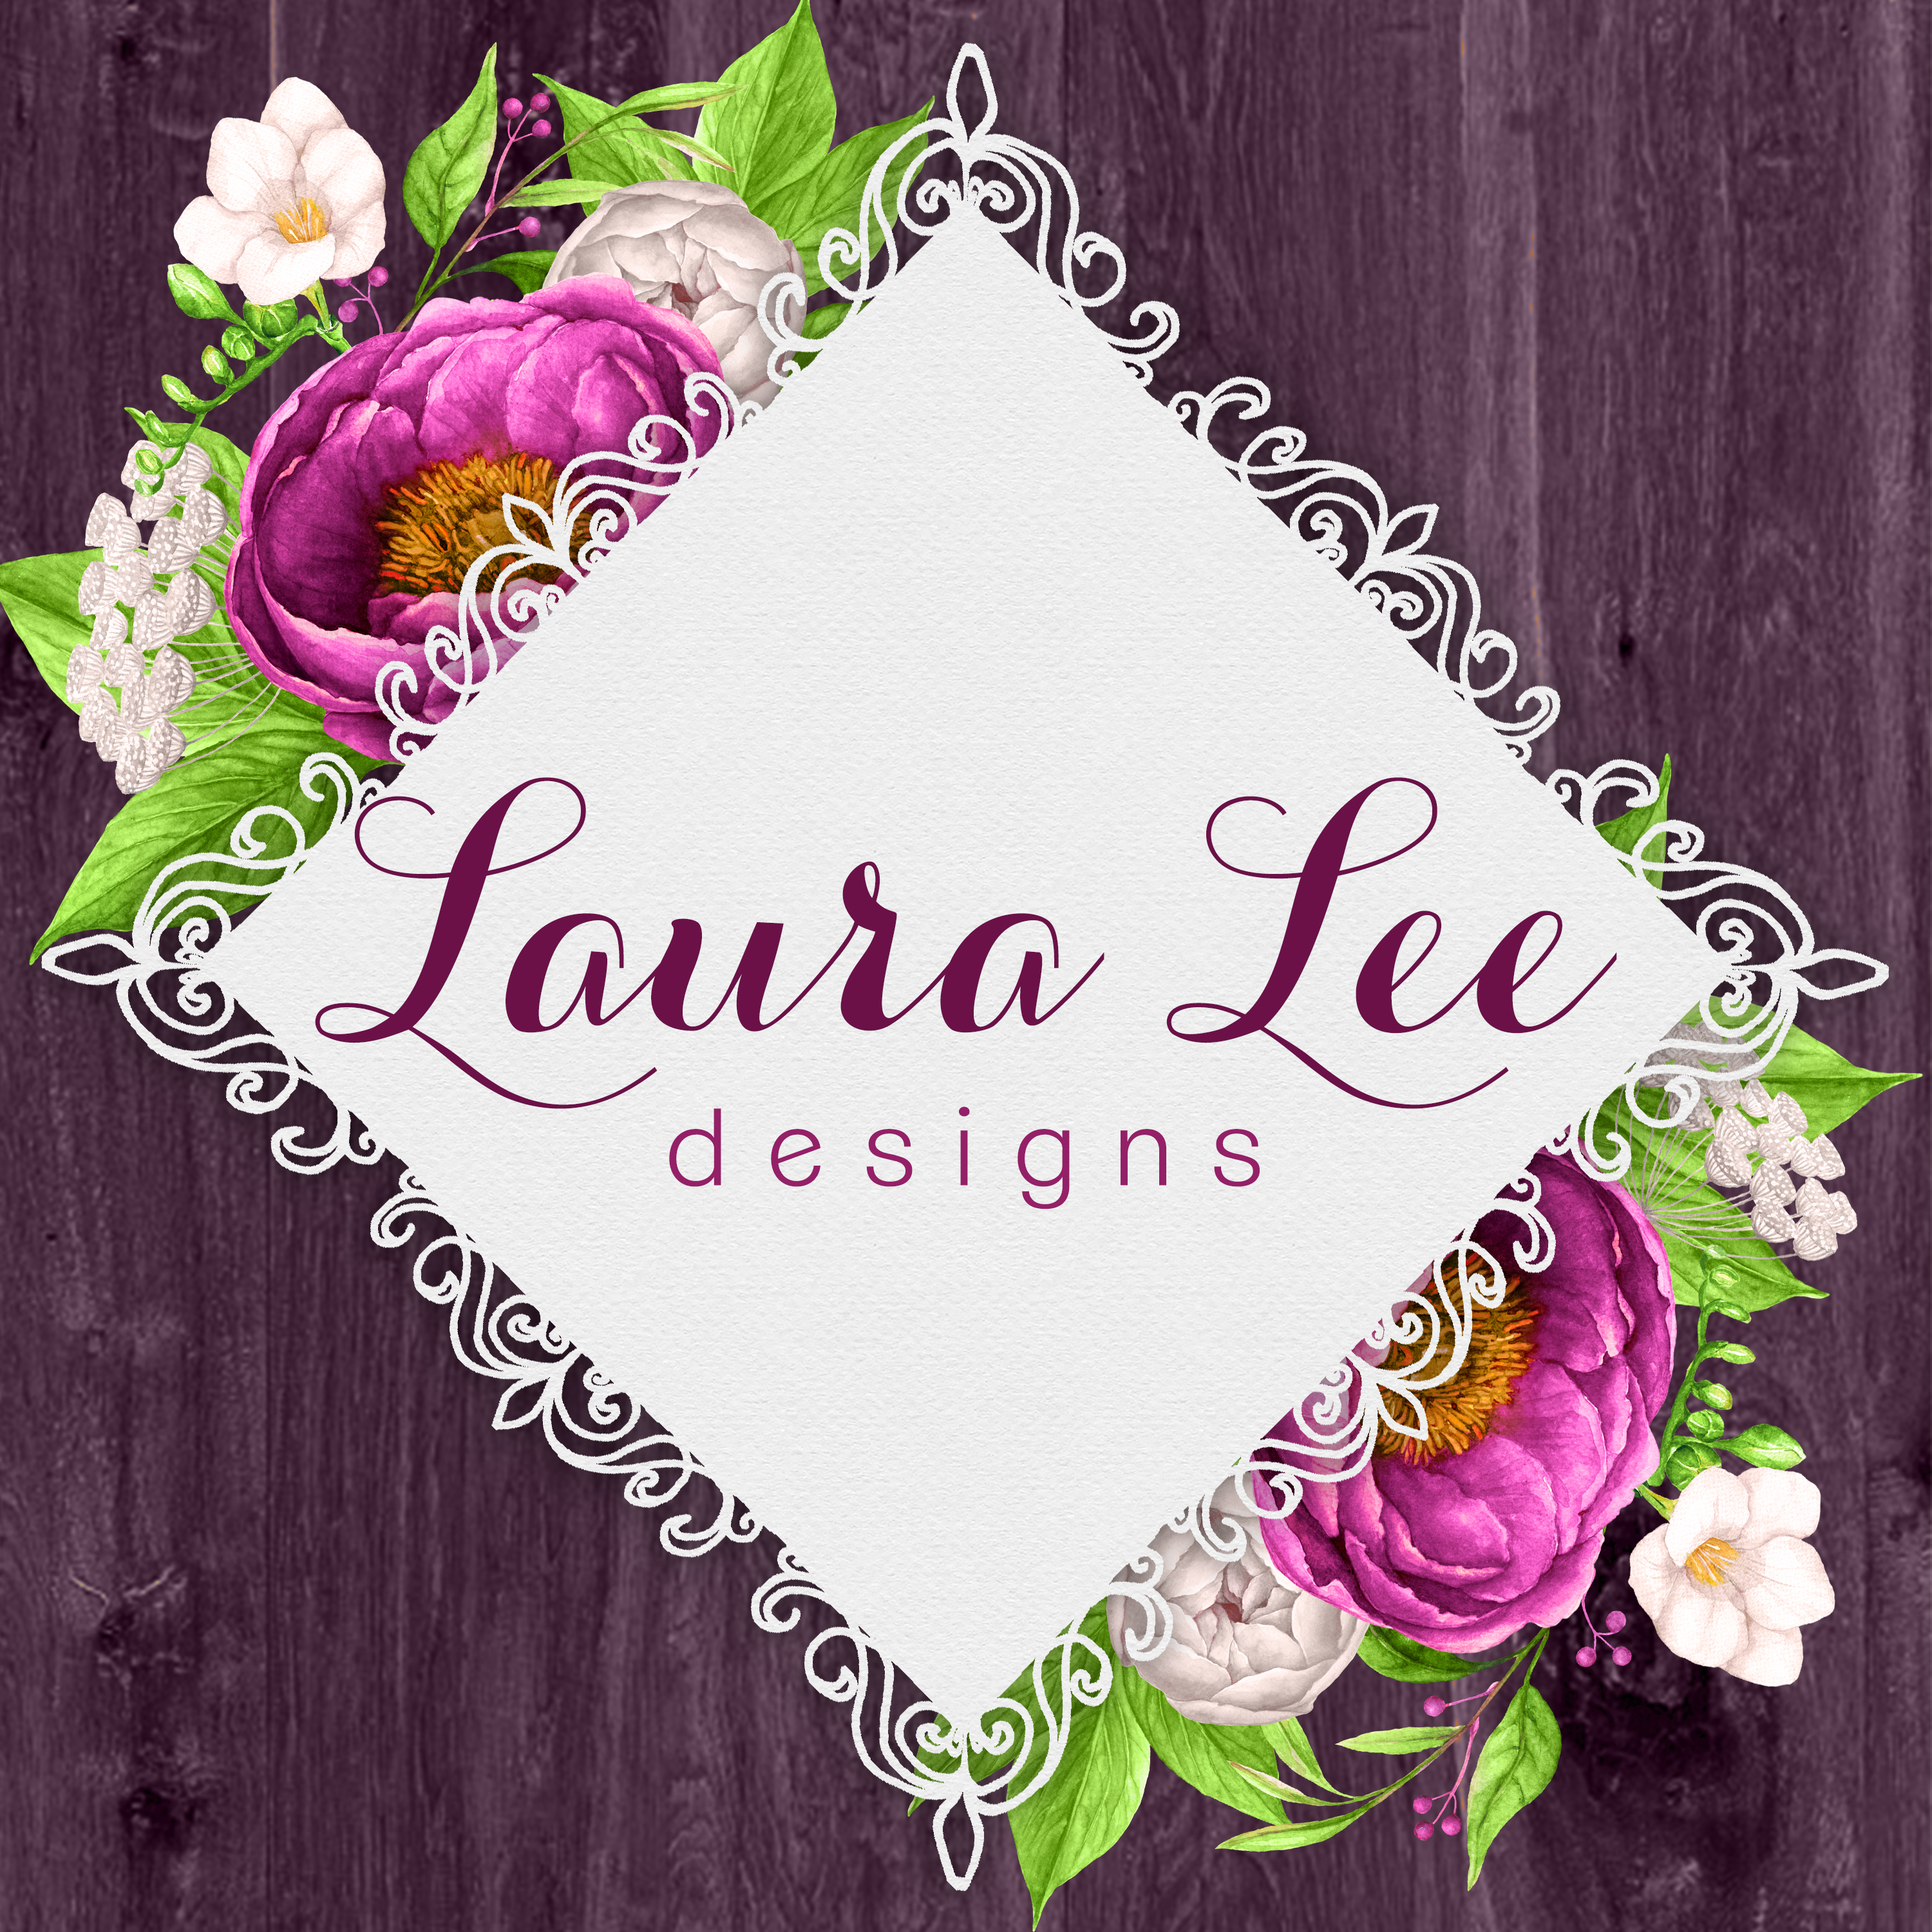 Owner of Laura Lee Designs Speaks Out About Her Success Through Etsy